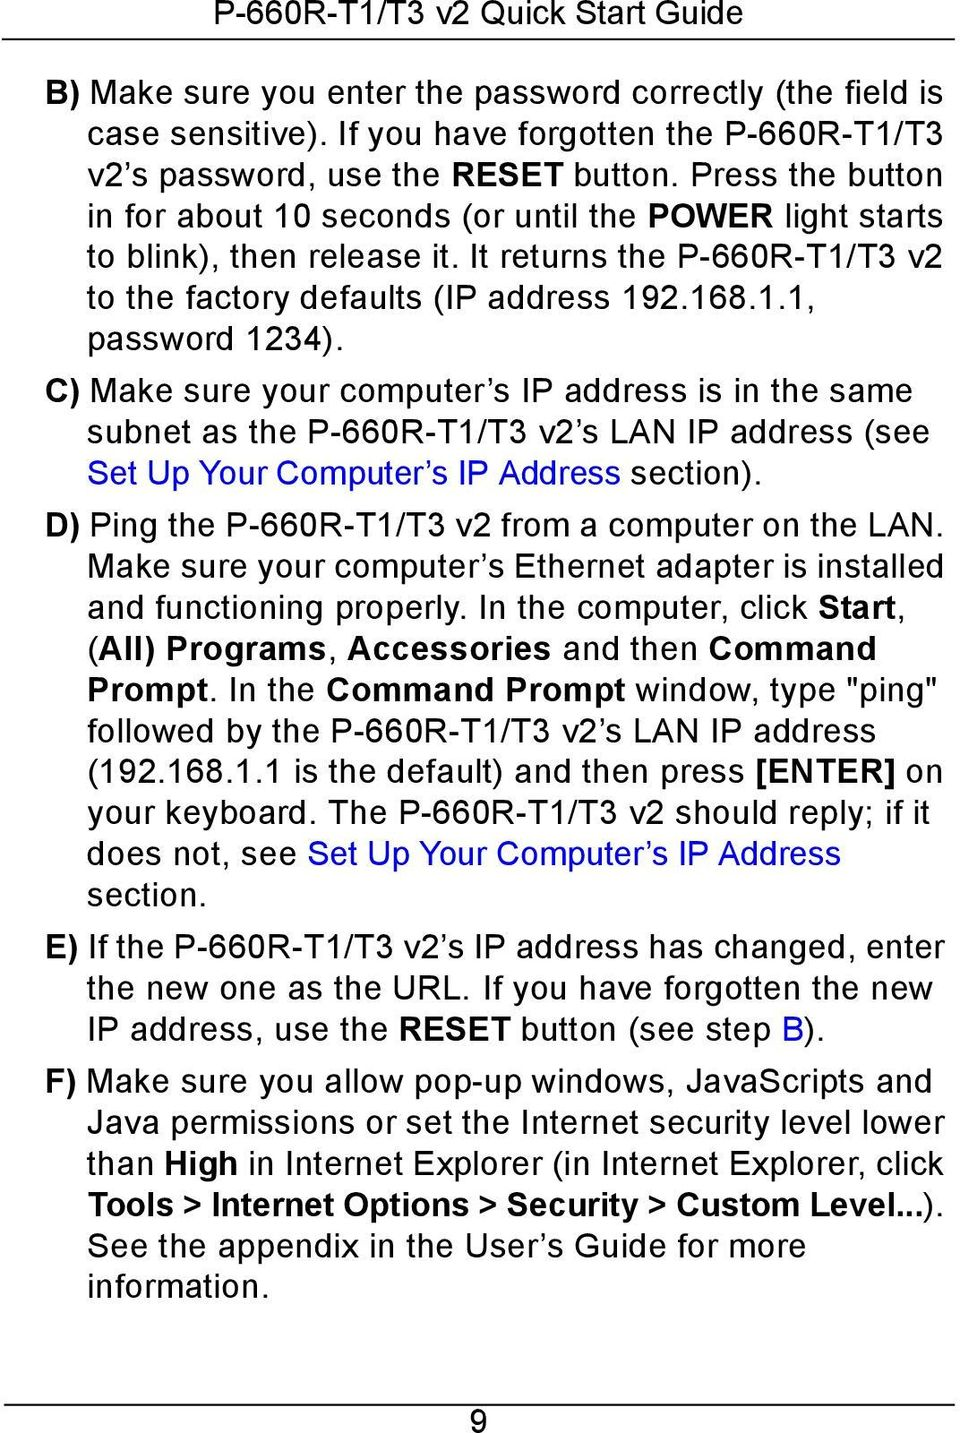 C) Make sure your computer s IP address is in the same subnet as the P-660R-T1/T3 v2 s LAN IP address (see Set Up Your Computer s IP Address section).